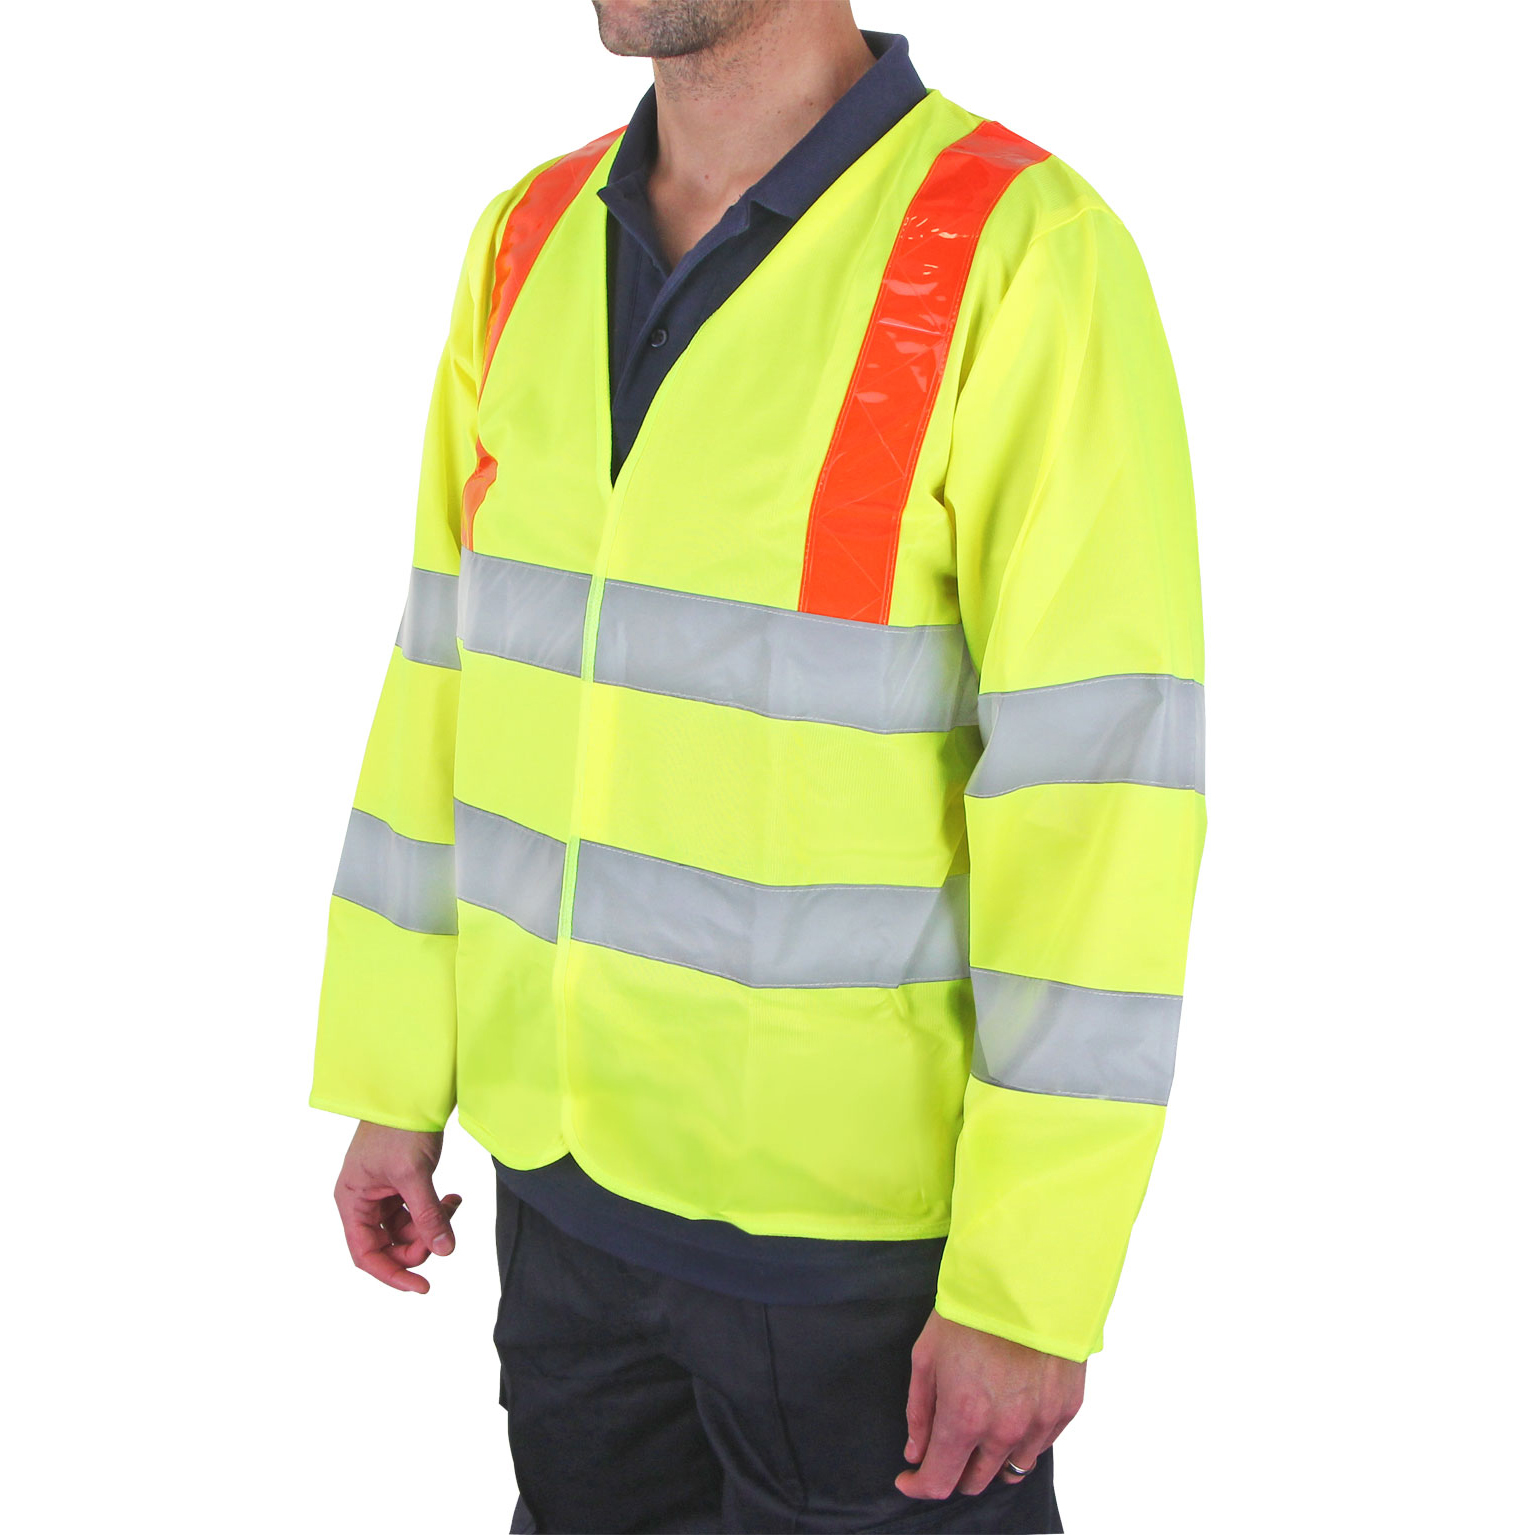 B-Seen High Visibility Long Sleeved Jerkin XL Saturn Yellow/Red Ref PKJENG(RT)XL *Up to 3 Day Leadtime*